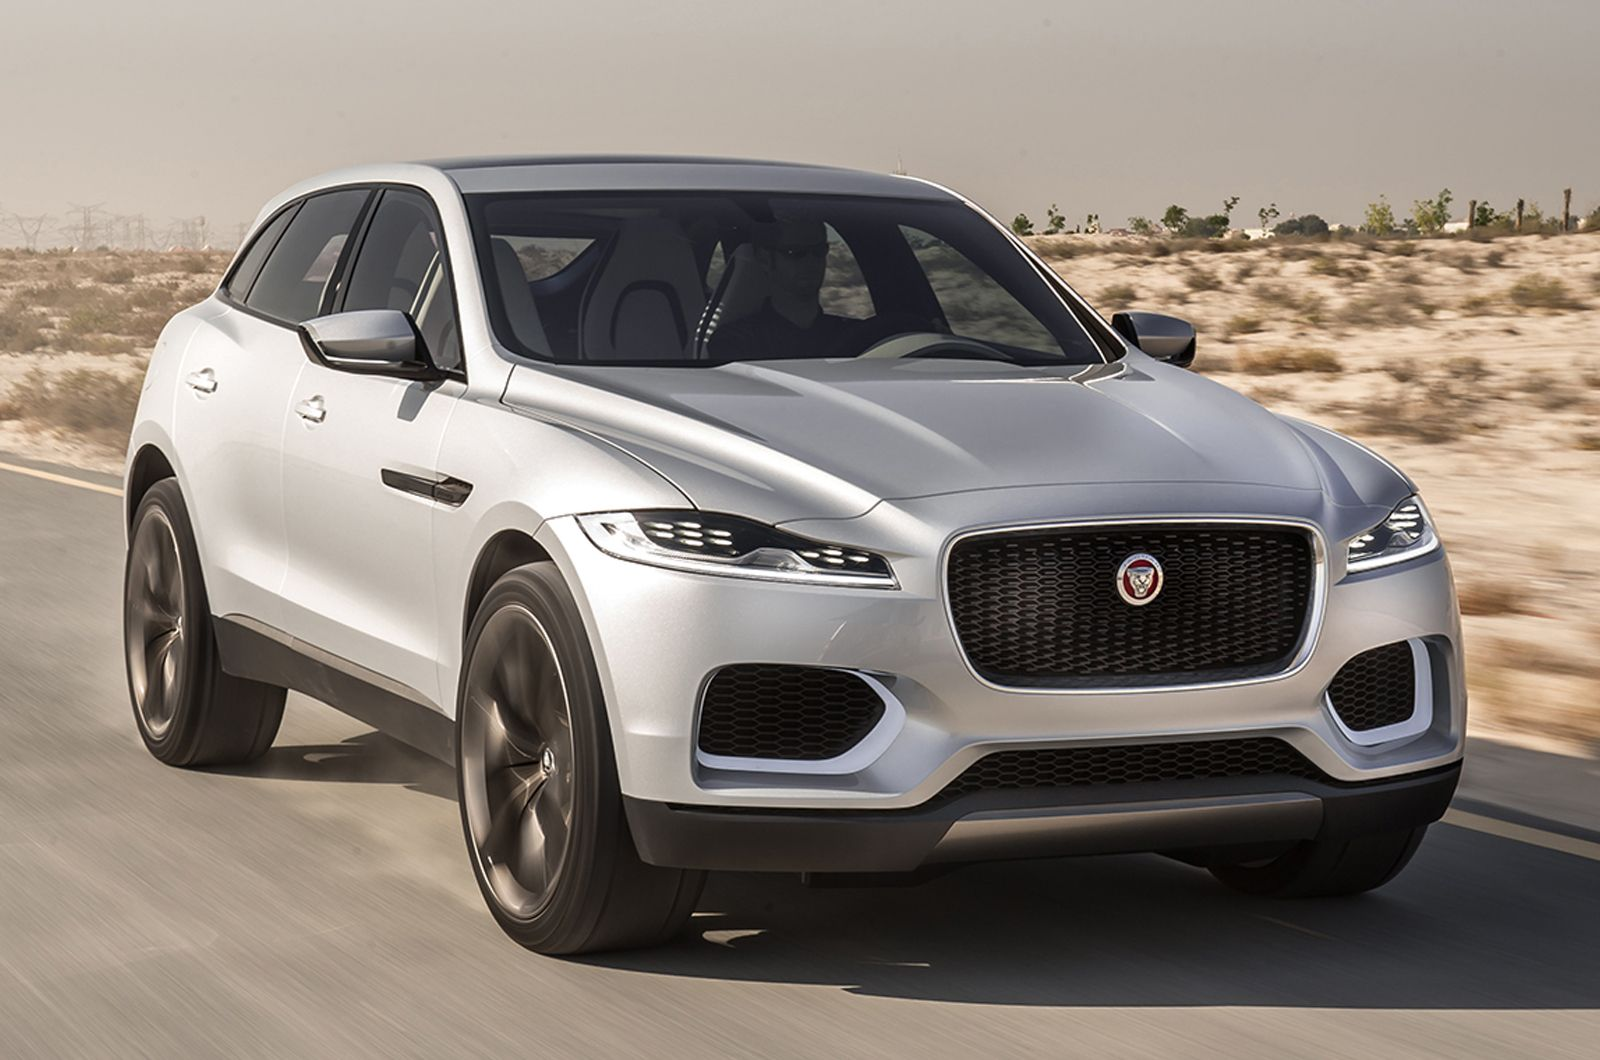 Jaguar C X17 First Drive Review Jaguar Suv Jaguar